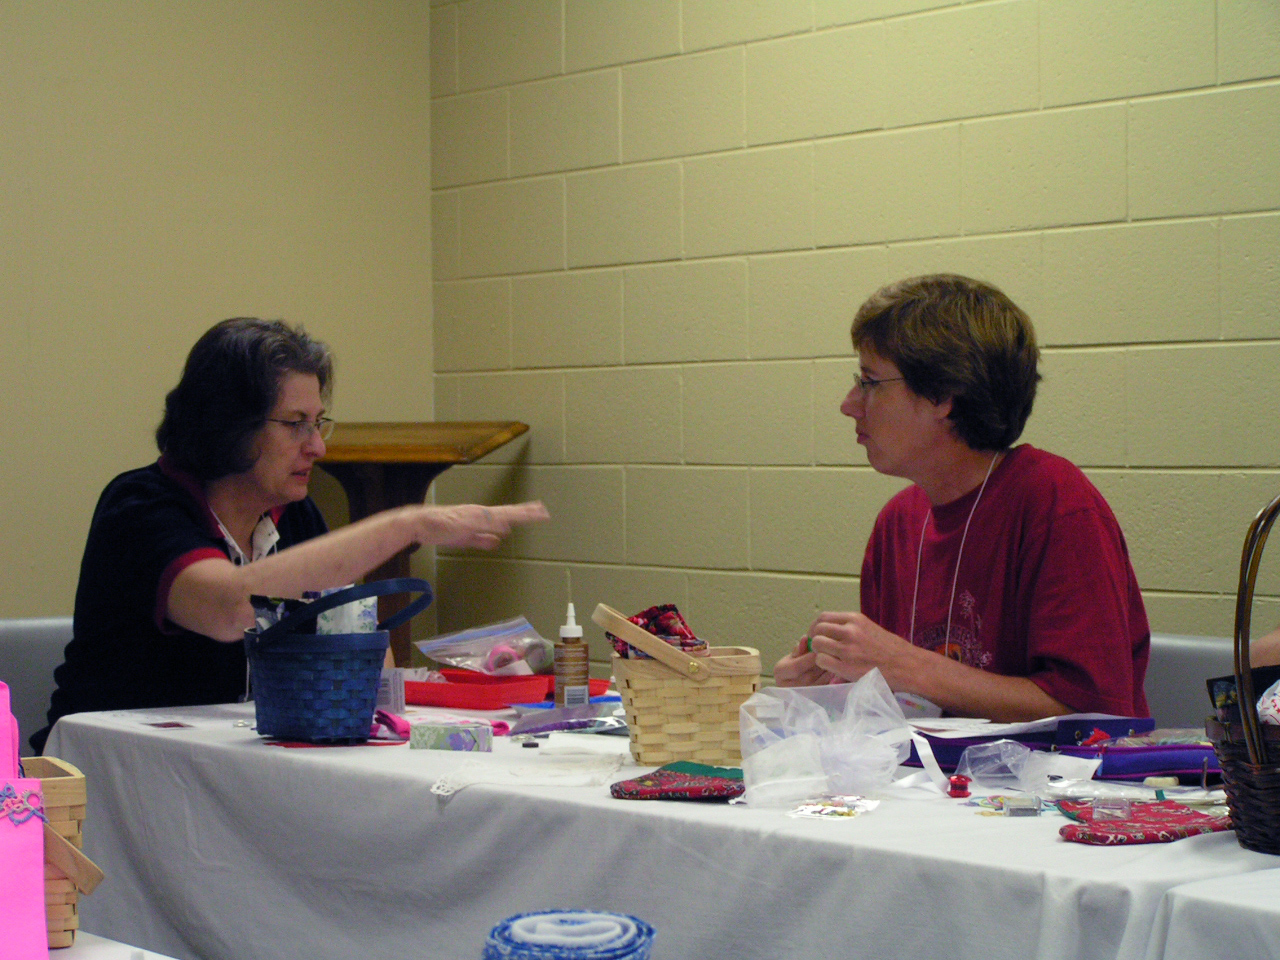 2 participants compare techniques